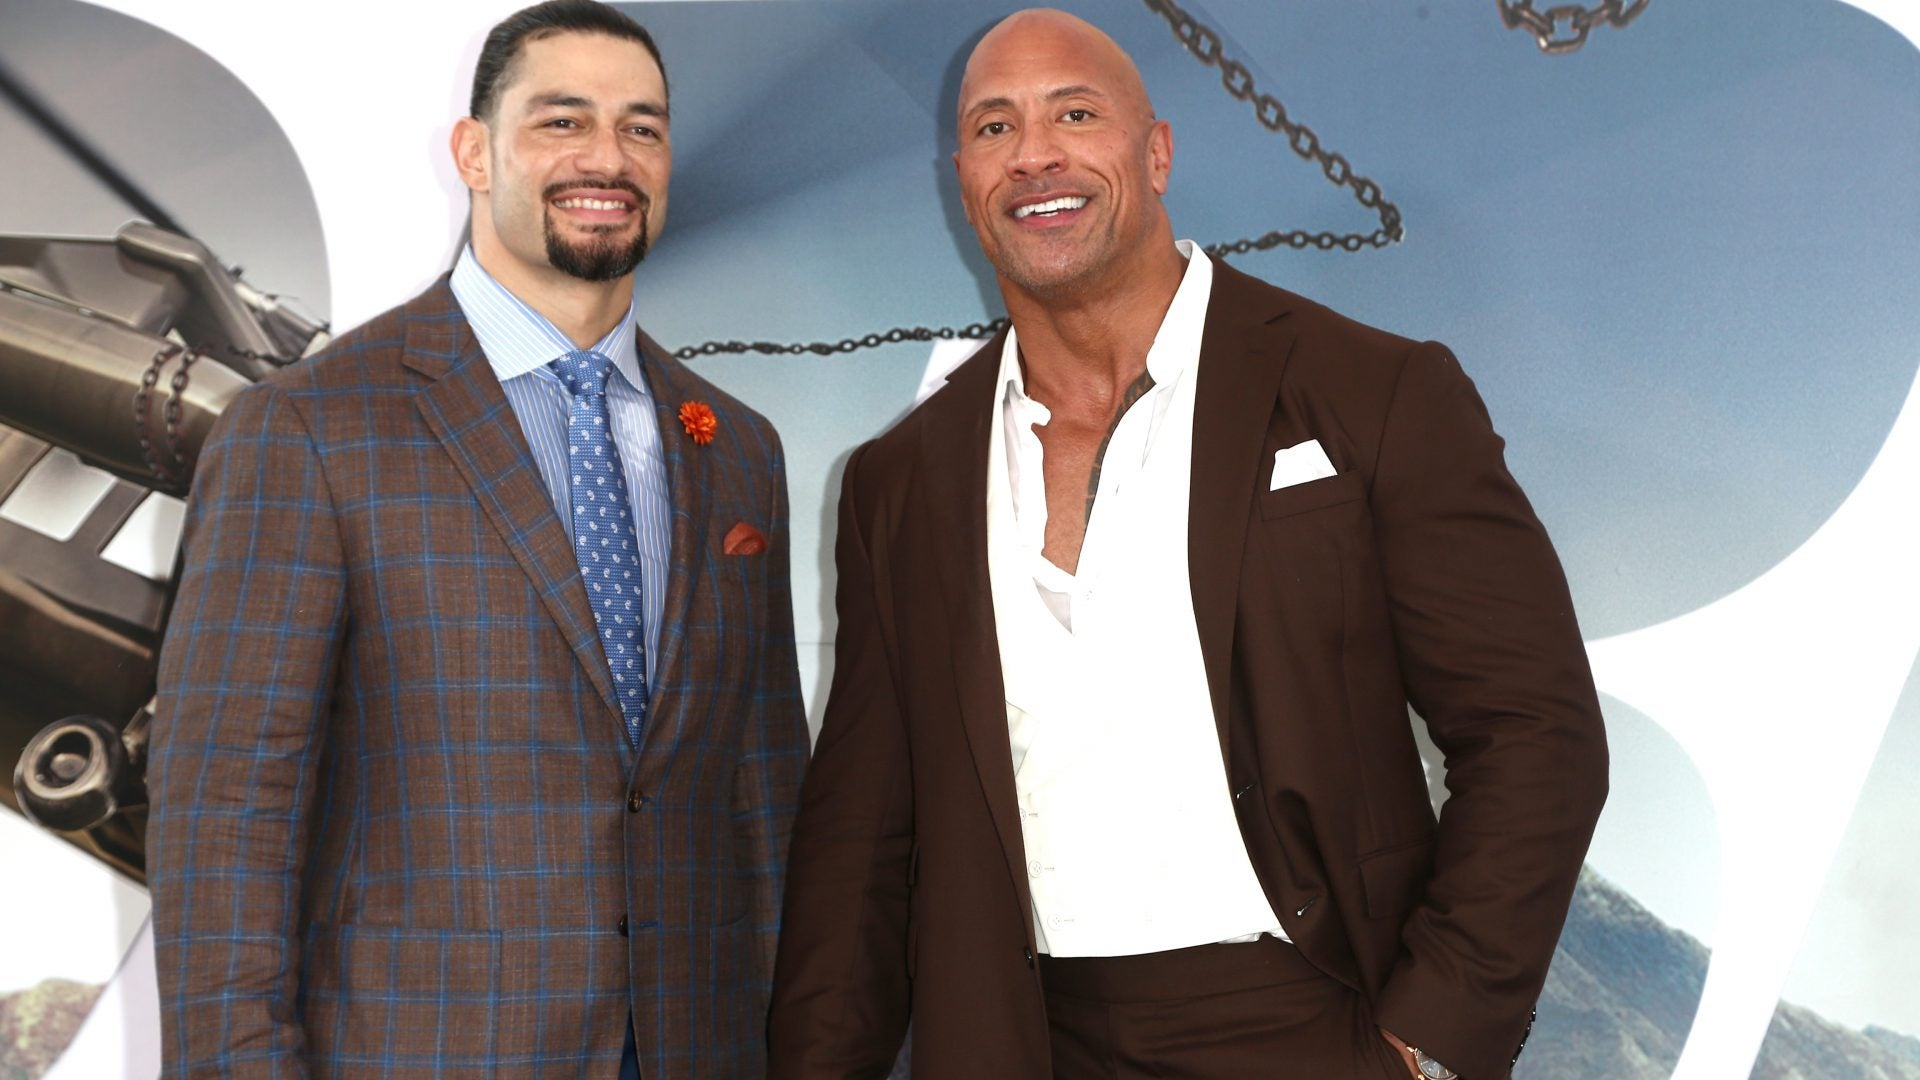 Watch The Rock Blush And Stumble In This Interview